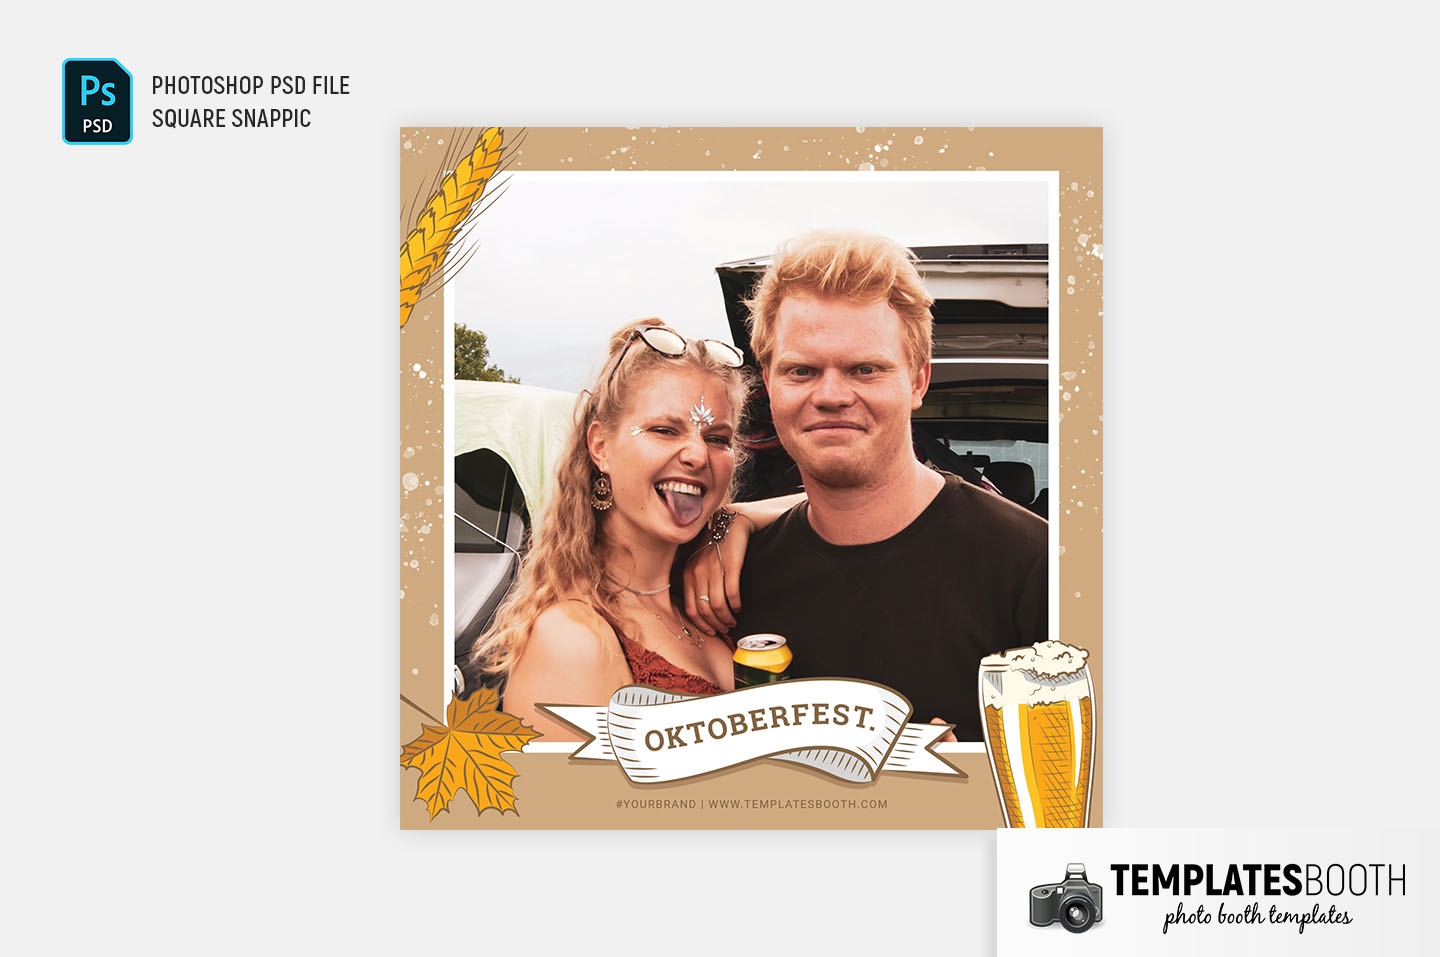 Oktoberfest Photo Booth Template (Snappic)